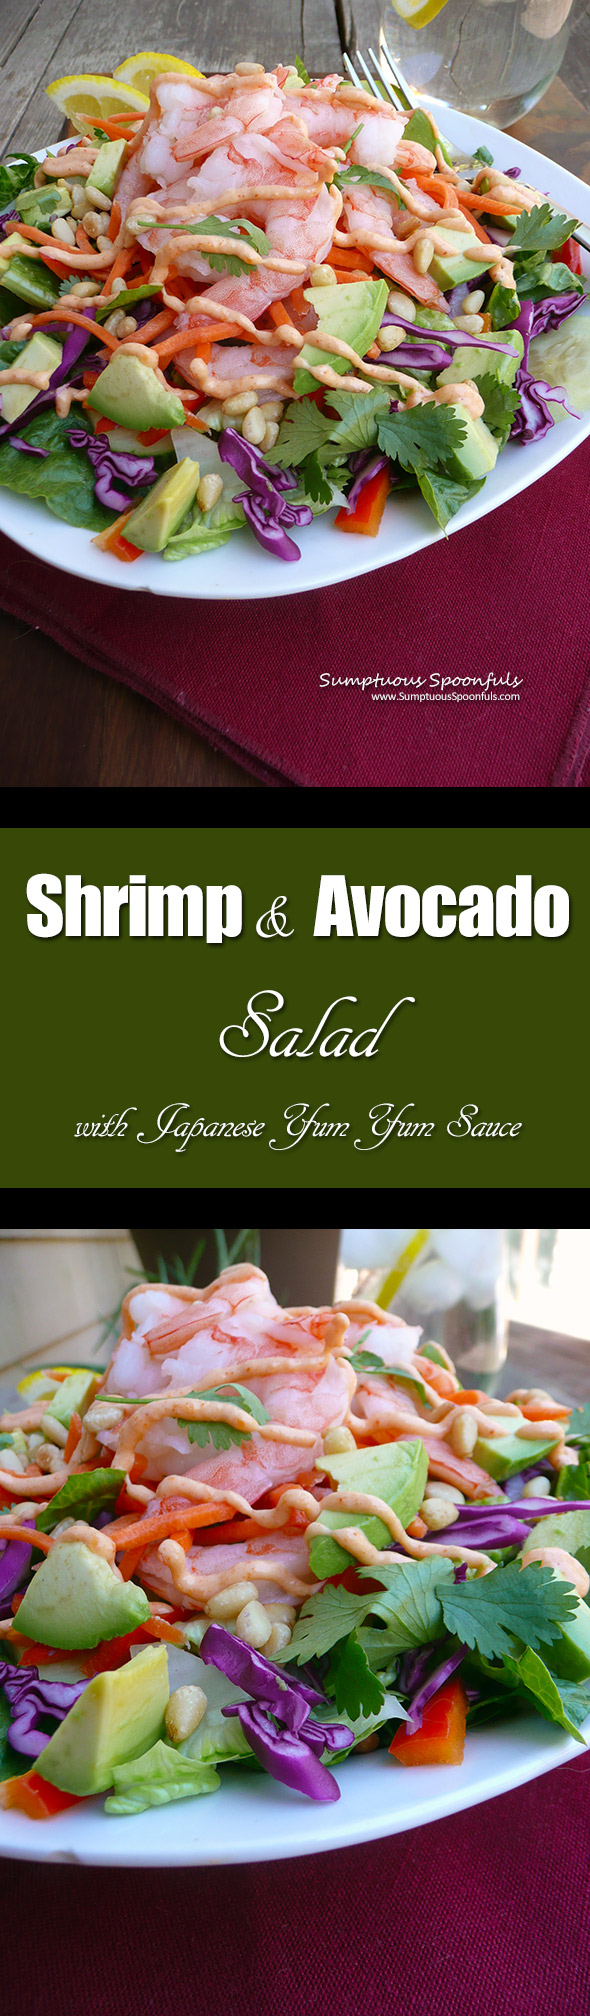 Shrimp & Avocado Salad with Japanese Yum Yum Sauce ~ Sumptuous Spoonfuls #easy #dinner #salad #recipe